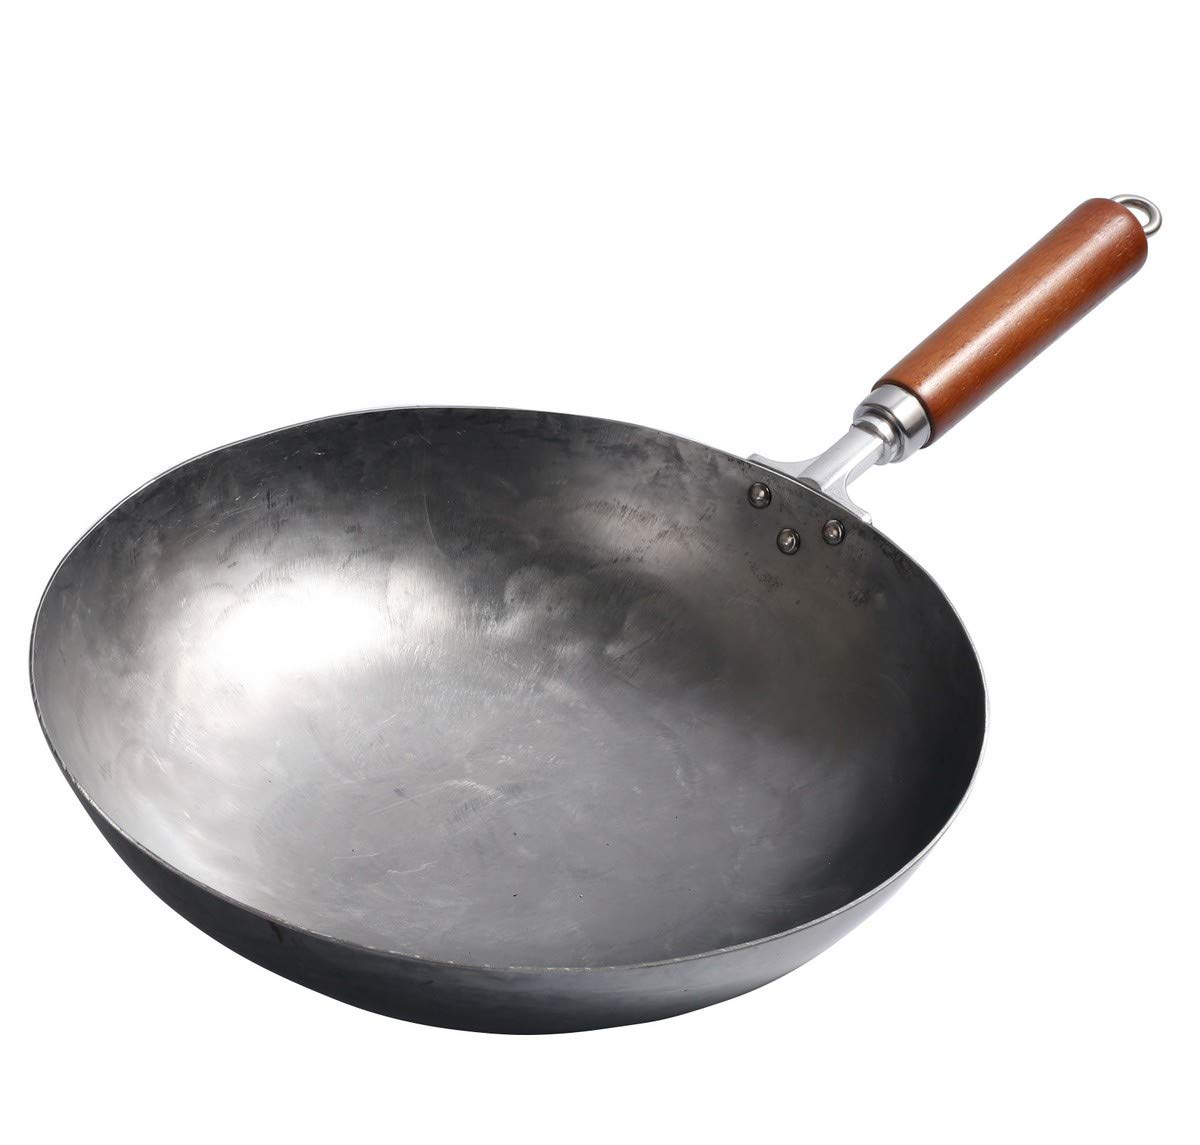 Mecete Wok pan 3rd Generation, Traditional Hand Hammered Uncoated Carbon Steel Pow Wok with Wooden and Steel Hanging Ring(13.38 Inch, Round Bottom) 1.8 mm thickness FDA approved